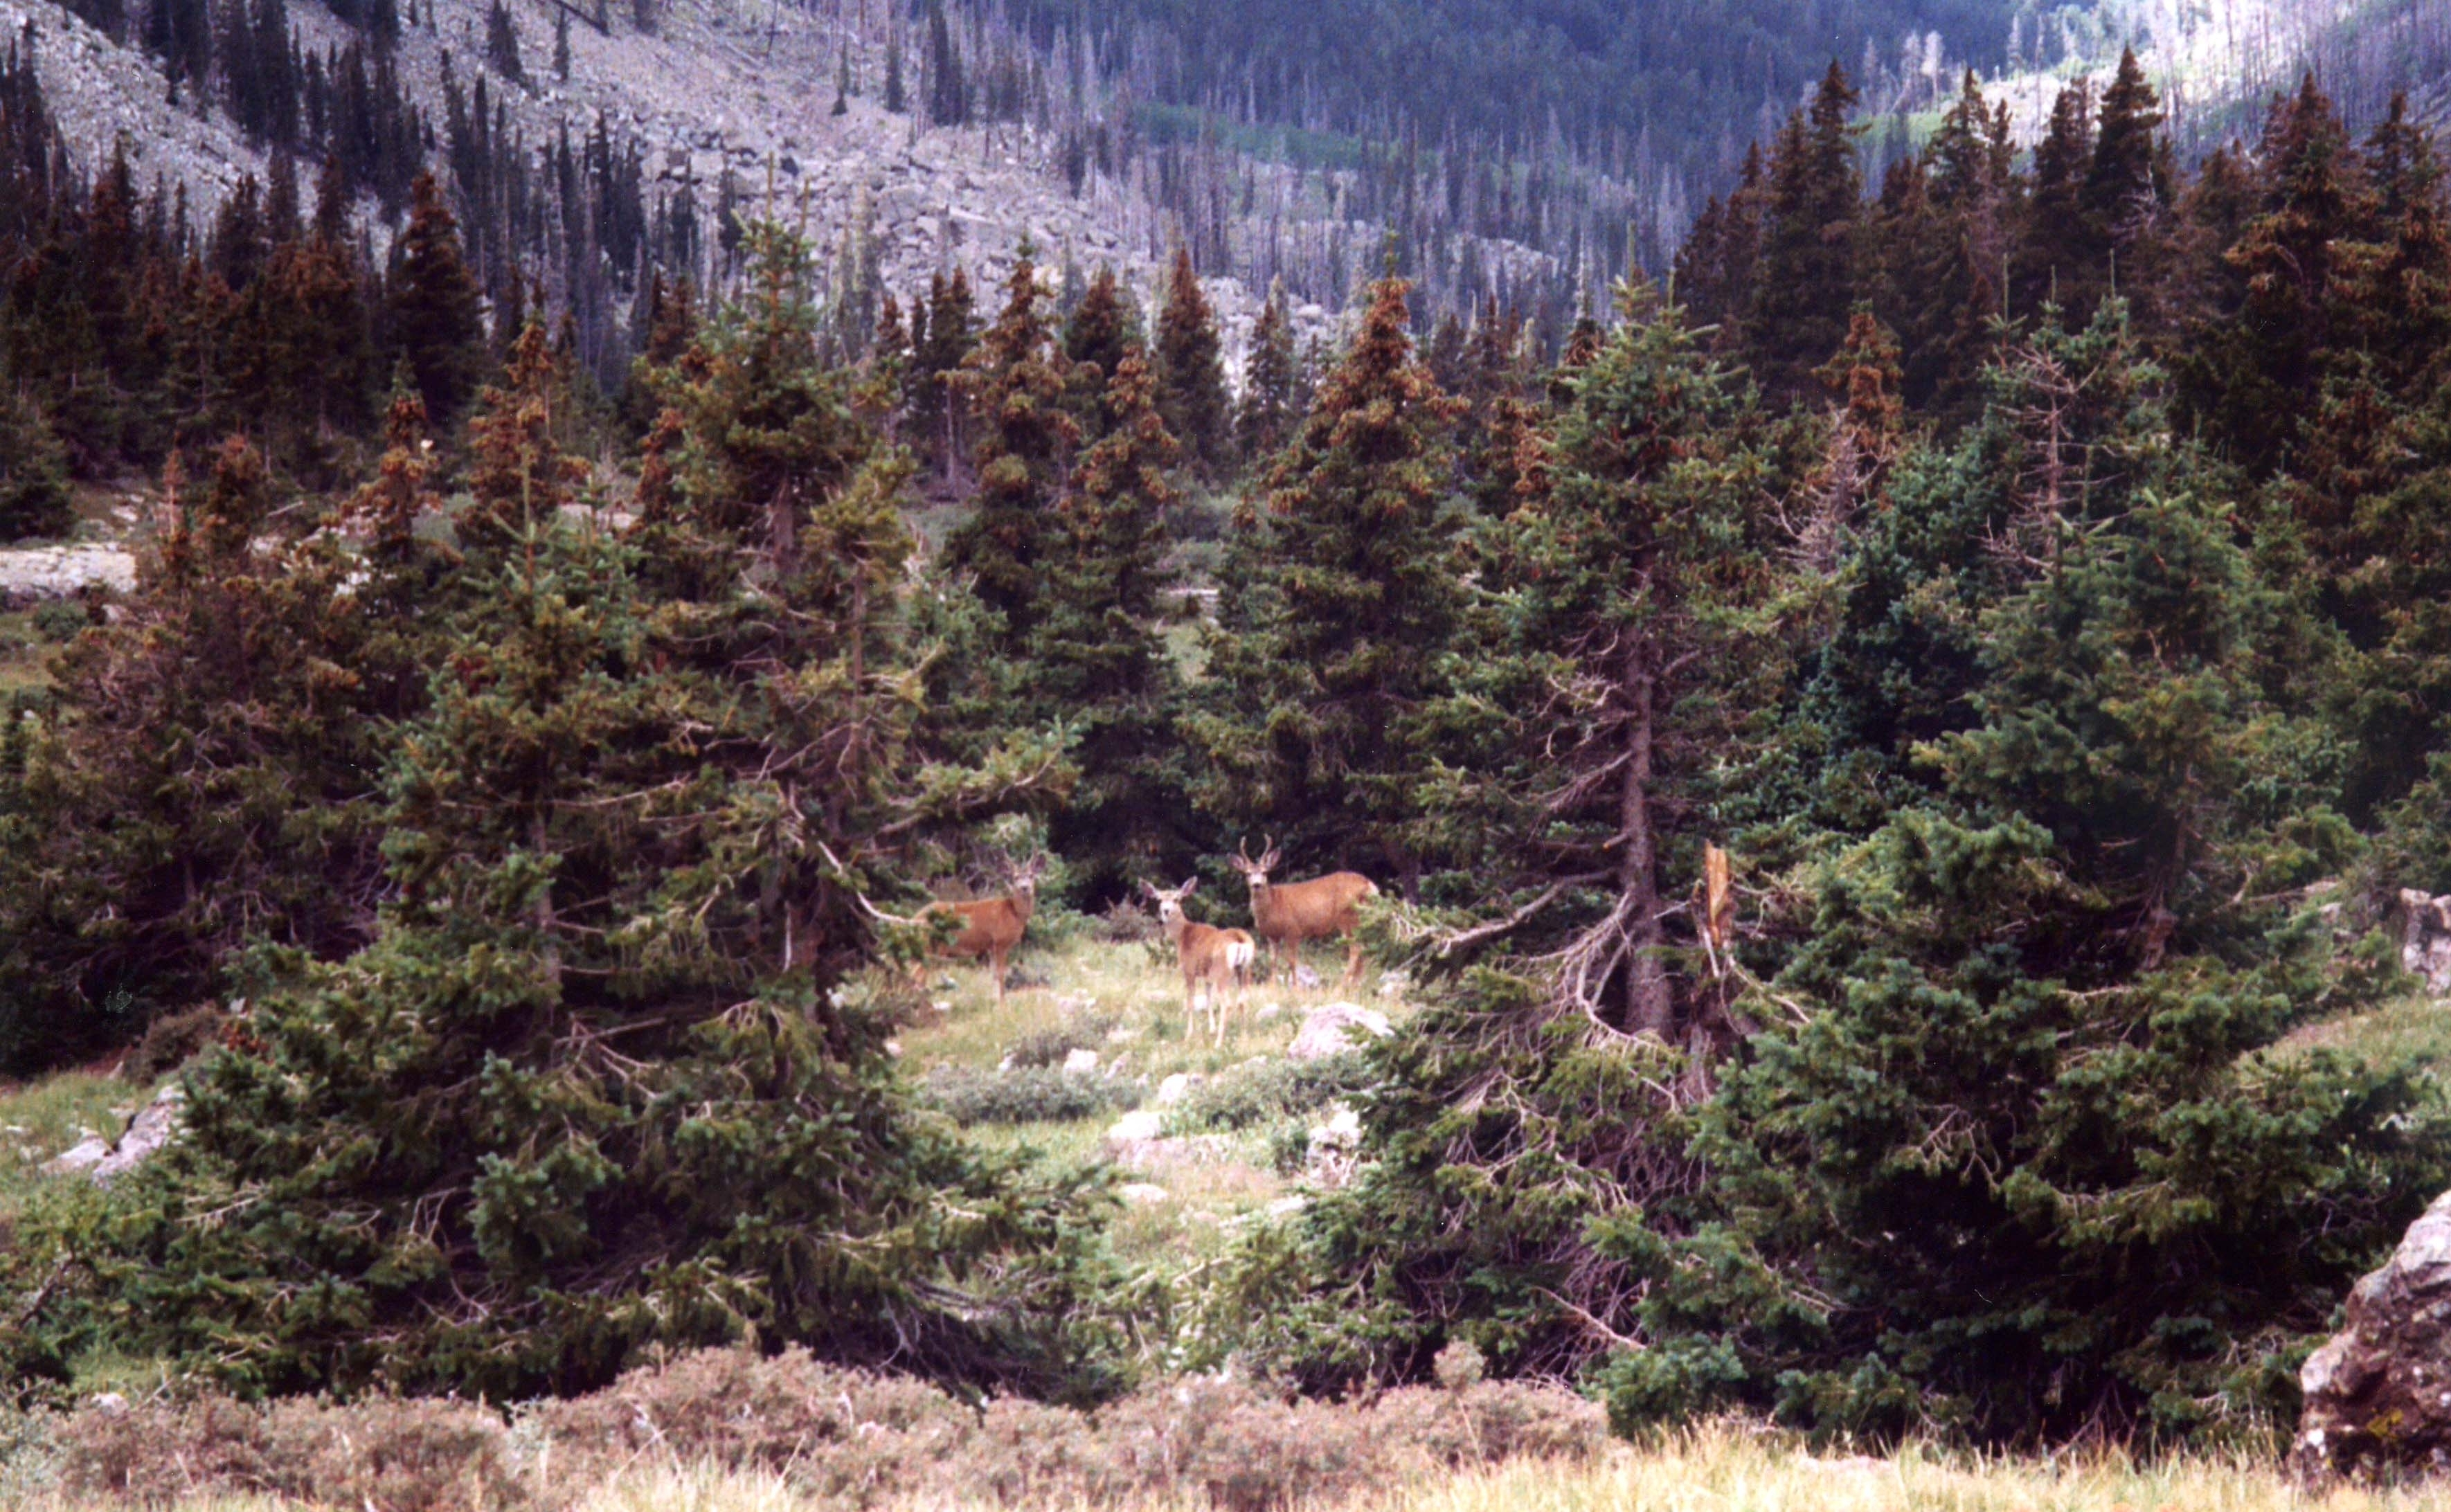 SangredeCristoWild-Deer-30Aug03.JPG